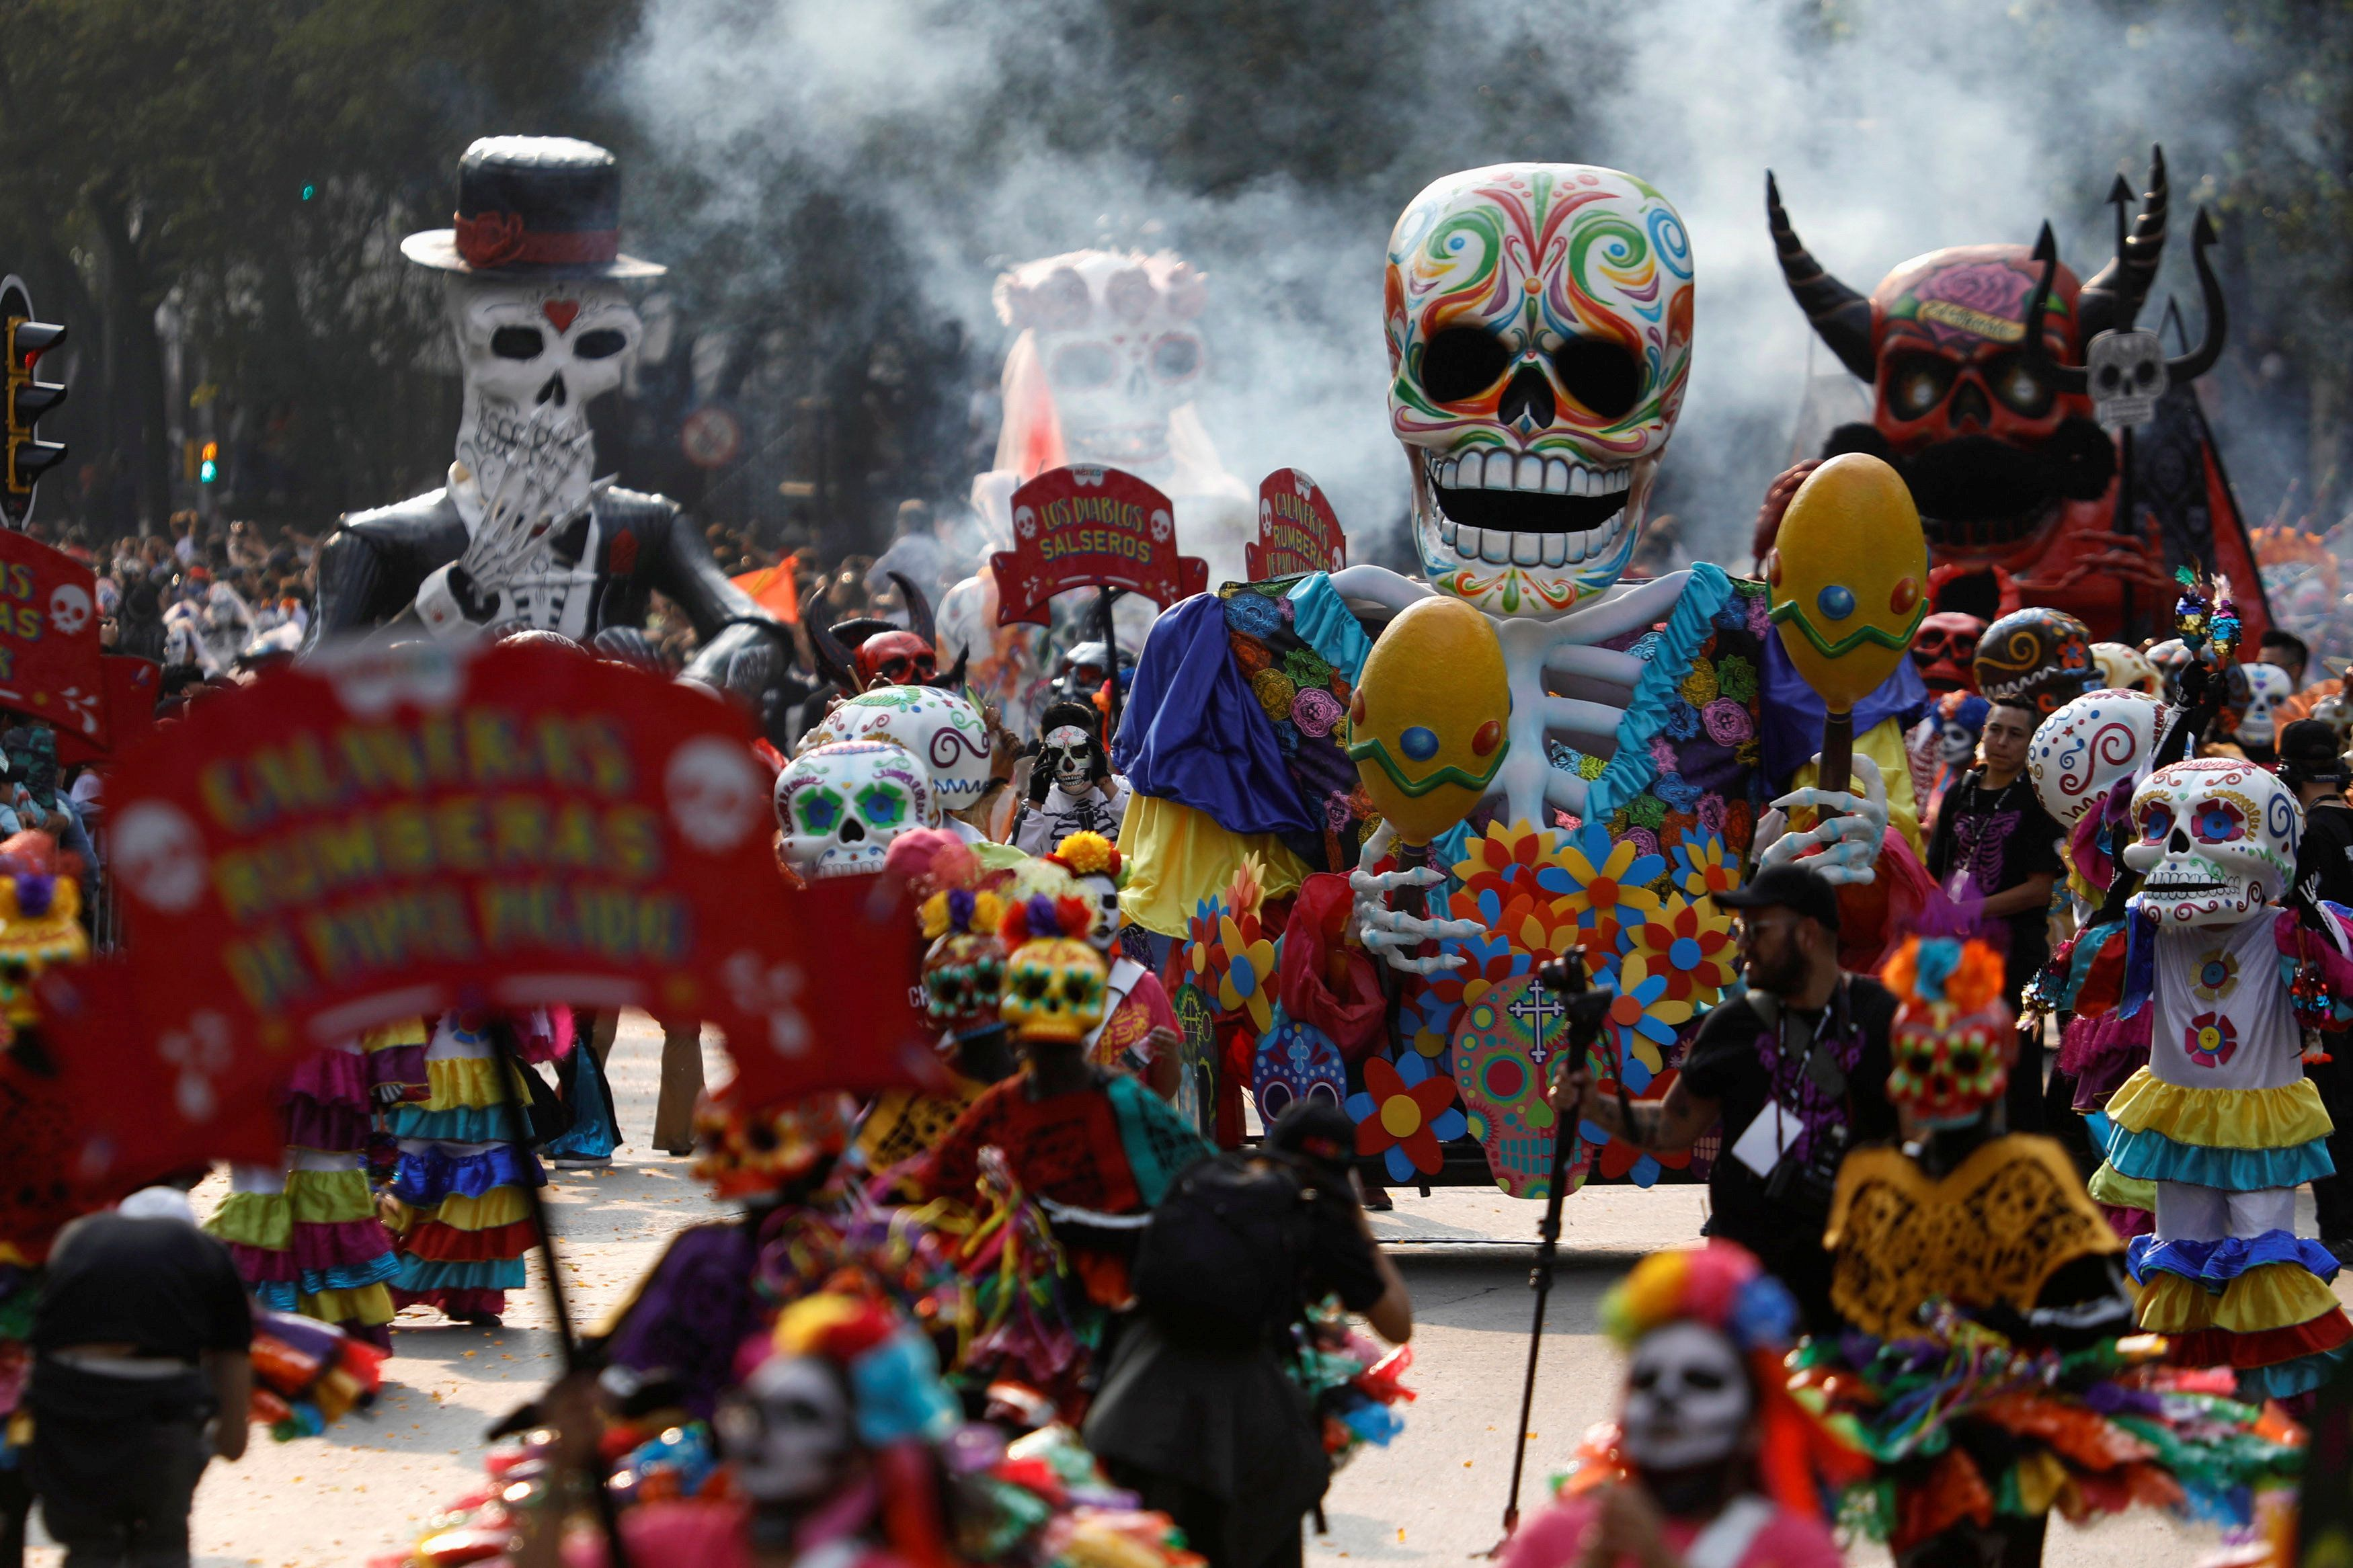 Skull figures are seen during a procession to commemorate Day of the Dead in Mexico City, Mexico, on Saturday.